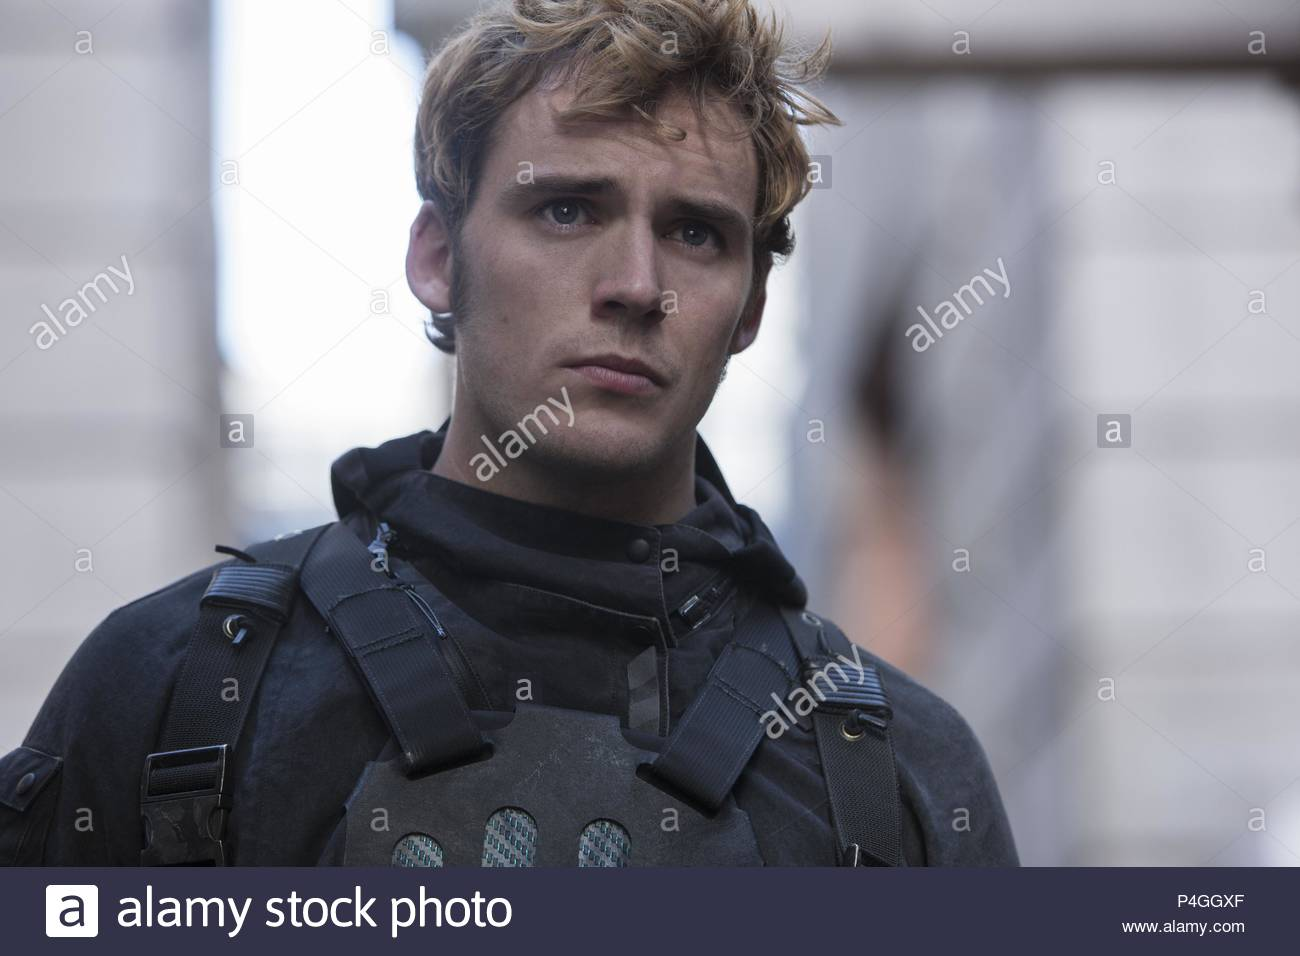 Original Film Title: THE HUNGER GAMES: MOCKINGJAY-PART 2.  English Title: THE HUNGER GAMES: MOCKINGJAY-PART 2.  Film Director: FRANCIS LAWRENCE.  Year: 2015.  Stars: SAM CLAFLIN. Credit: COLOR FORCE/LIONGATE/STUDIO BABELSBERG / CLOSE, MURRAY / Album - Stock Image